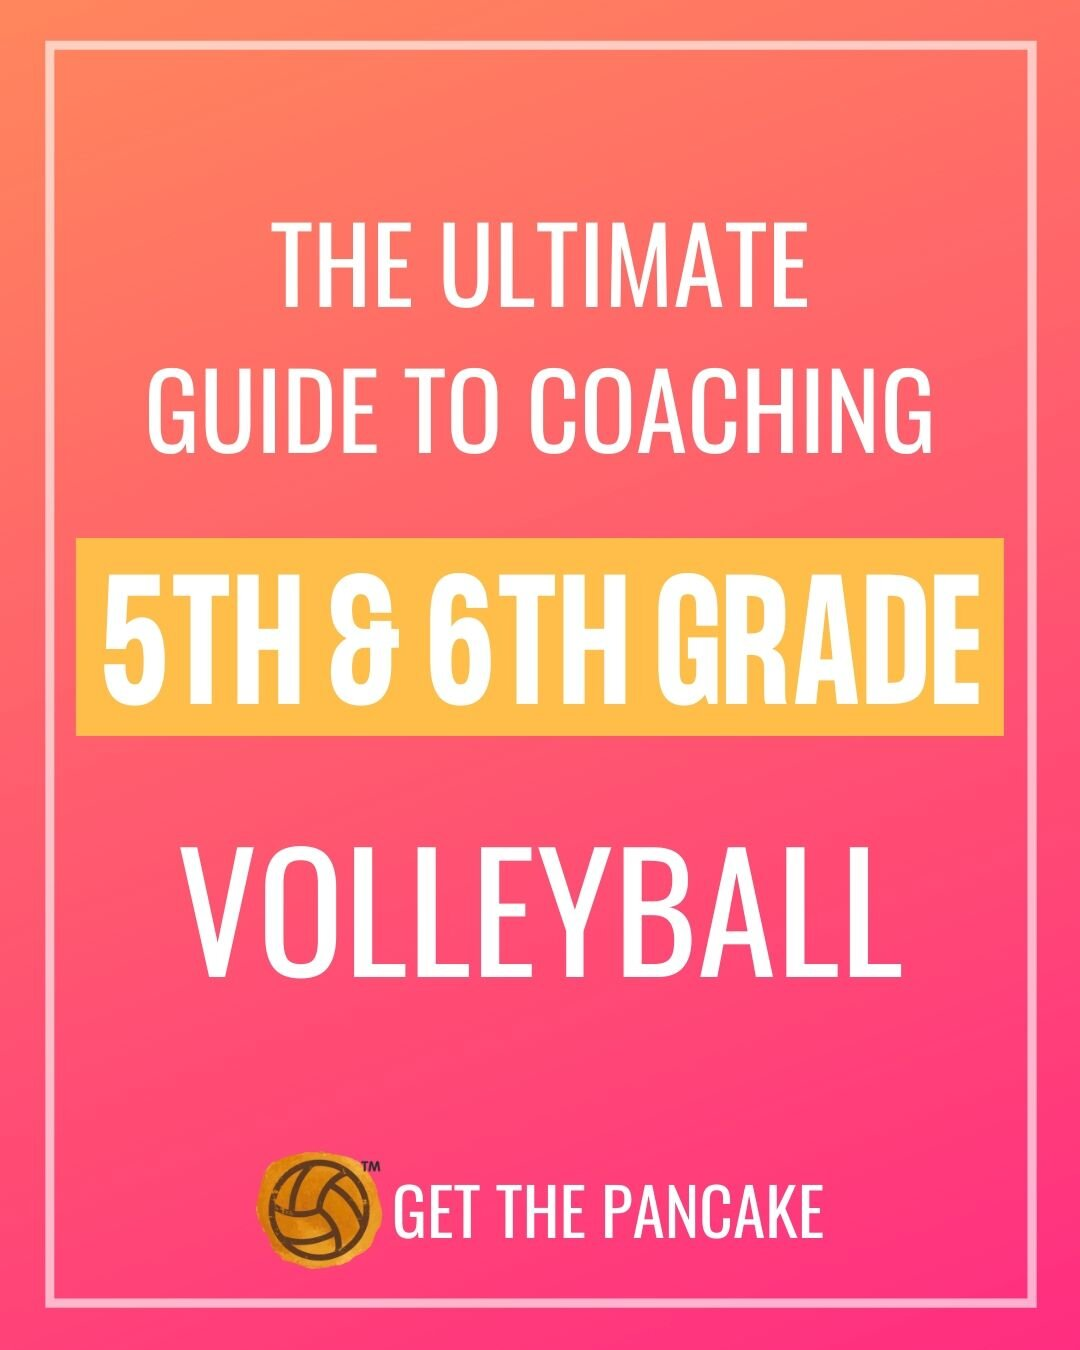 The Ultimate Guide to Coaching 5th and 6th Grade Volleyball [ 1350 x 1080 Pixel ]